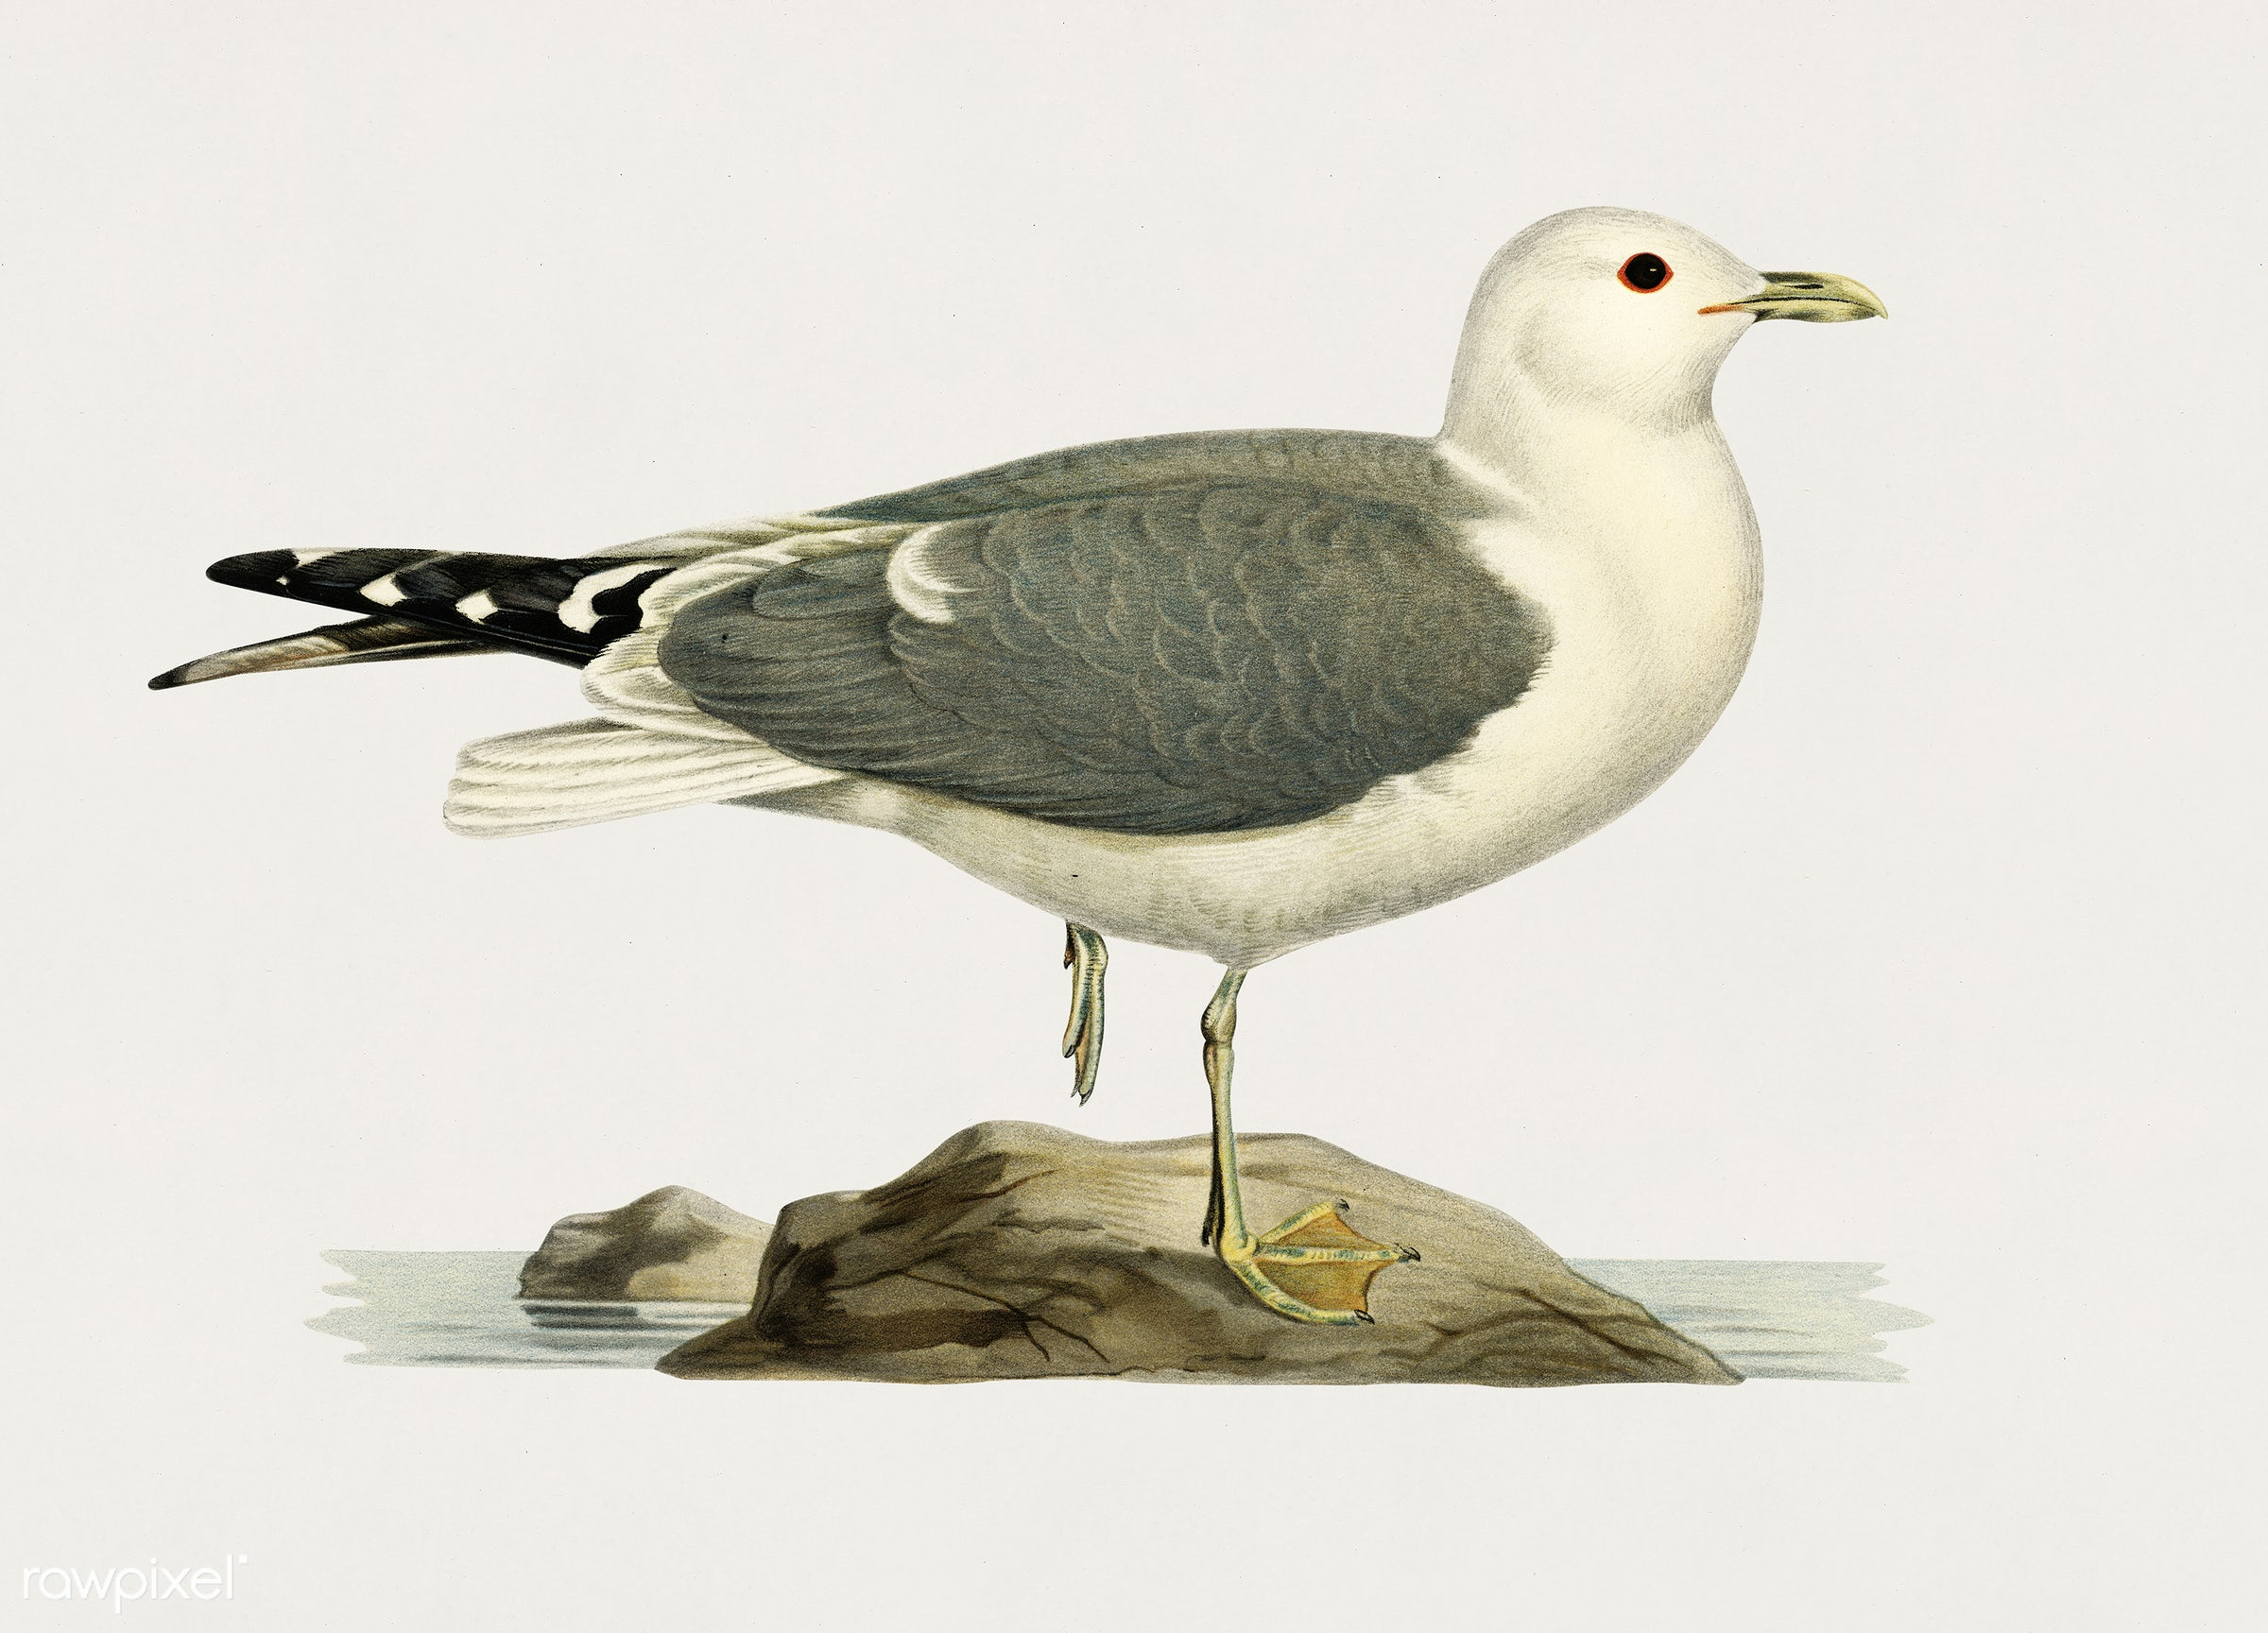 Common gull (larus canu) illustrated by the von Wright brothers. Digitally enhanced from our own 1929 folio version of...